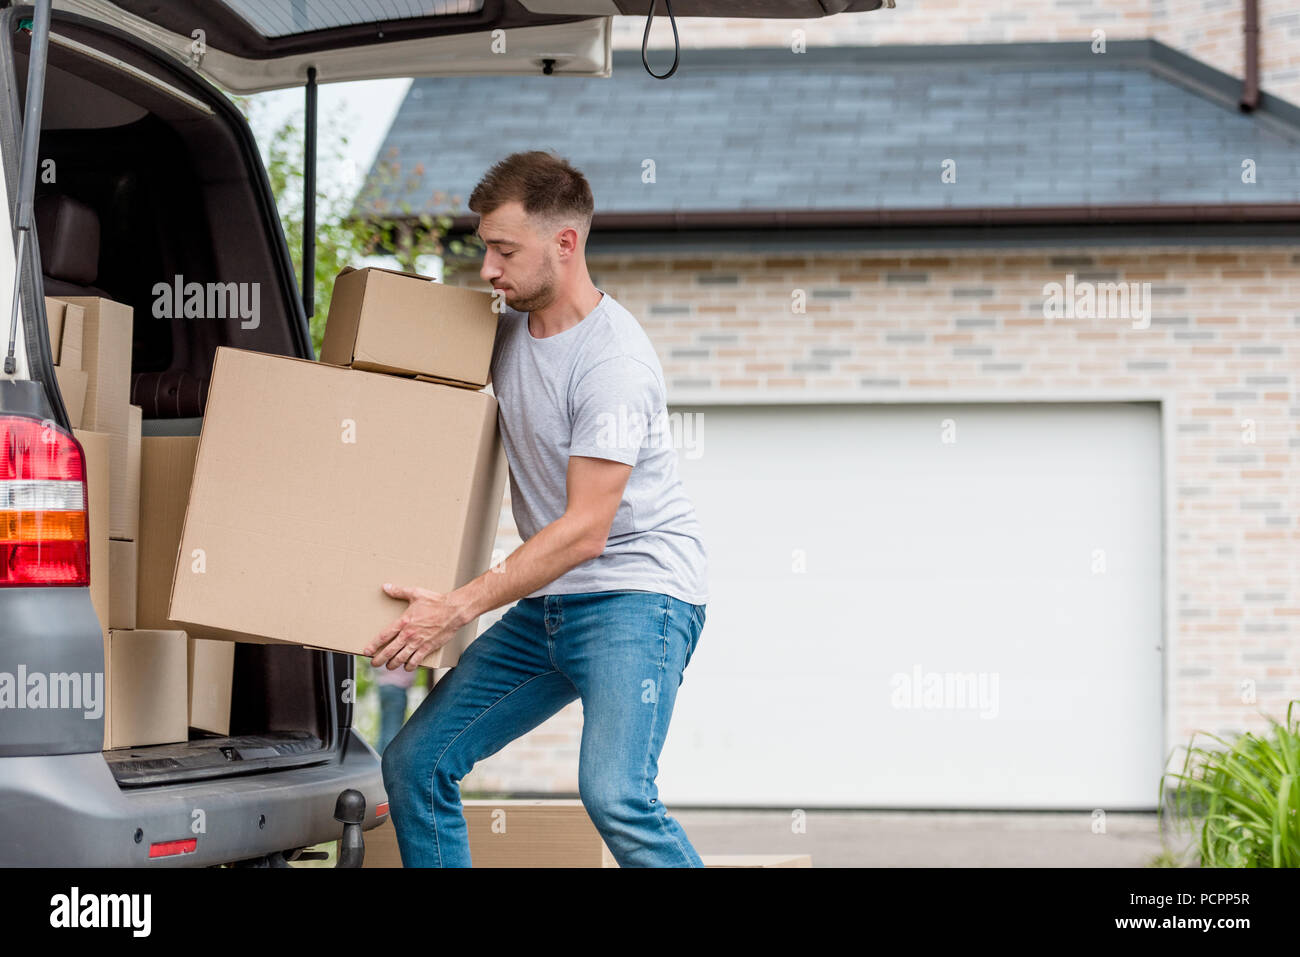 strenuous young man moving boxes from car into new house - Stock Image